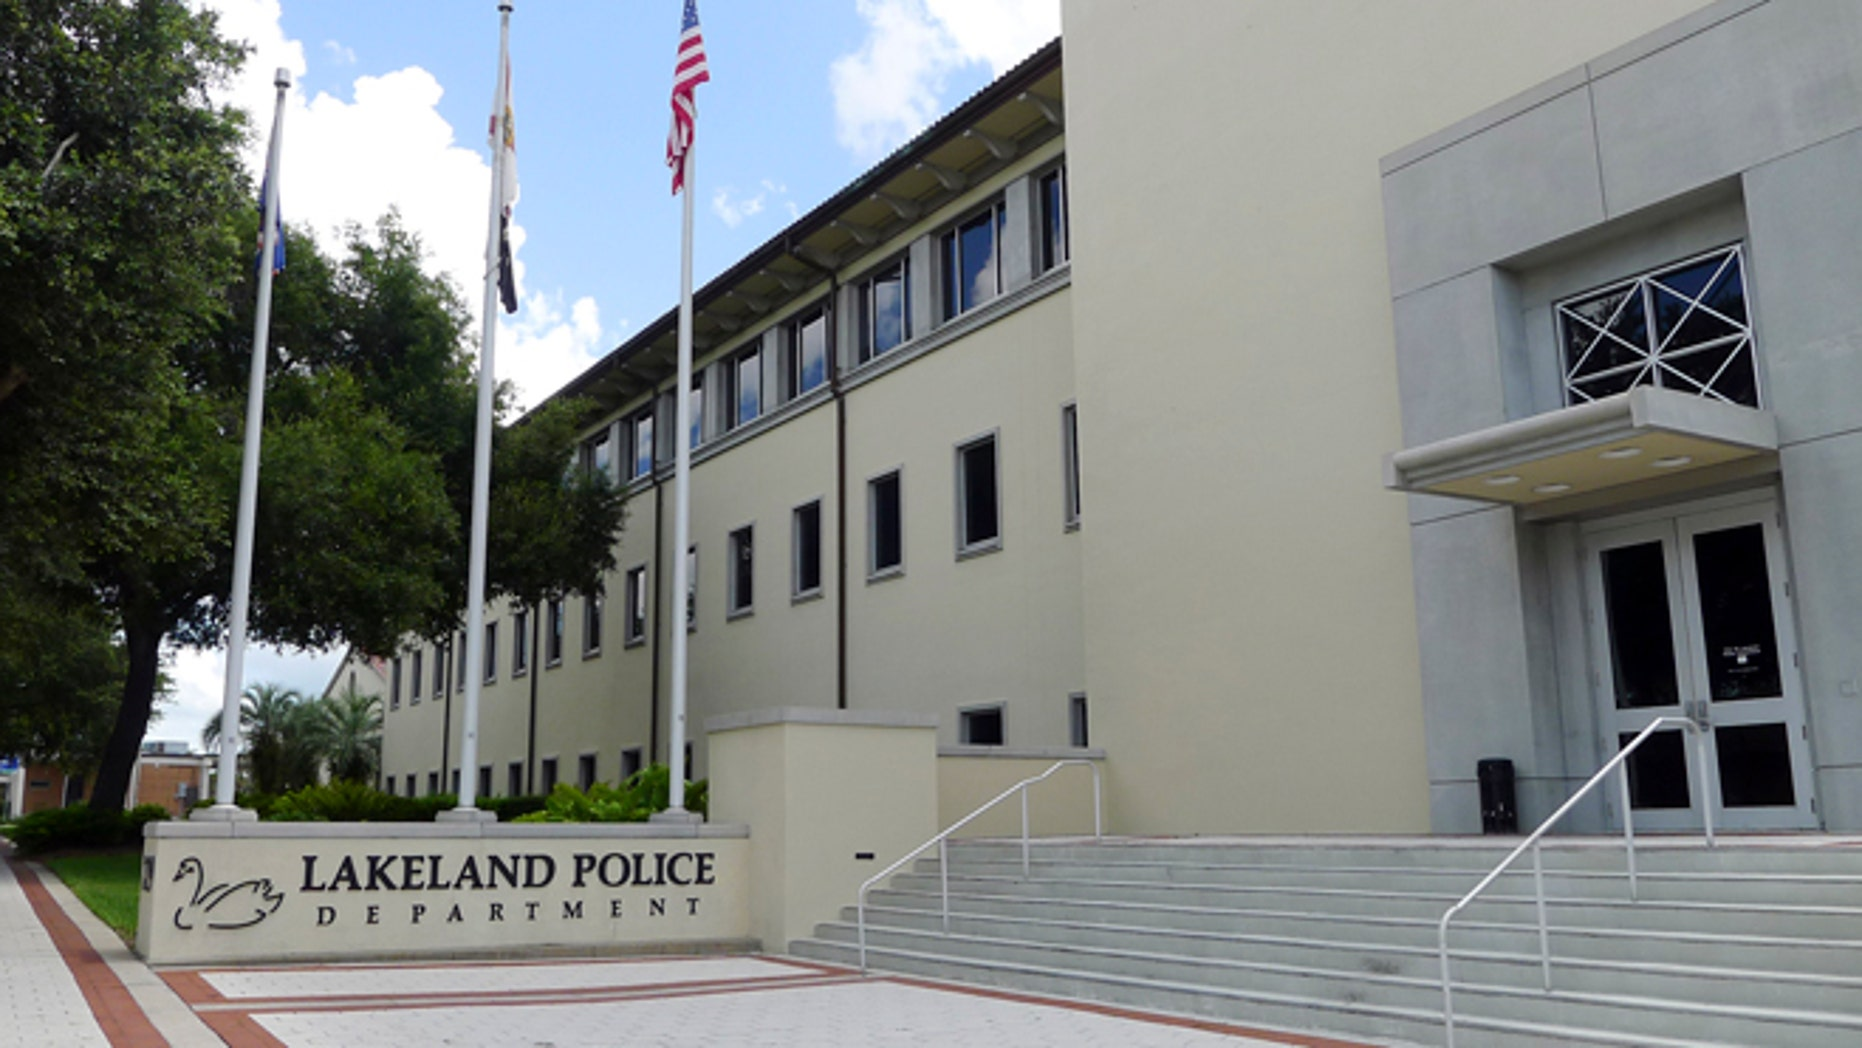 July 9, 2013: The exterior of the Lakeland Police Department building is shown in downtown Lakeland, Fla. Nearly a dozen police officers in Lakeland are under investigation after state and local officials uncovered a widespread sex scandal that has unfolded over eight years. A civilian crime analyst for the department says she had consensual and sometimes coerced sex with the officers. (AP/Tamara Lush)